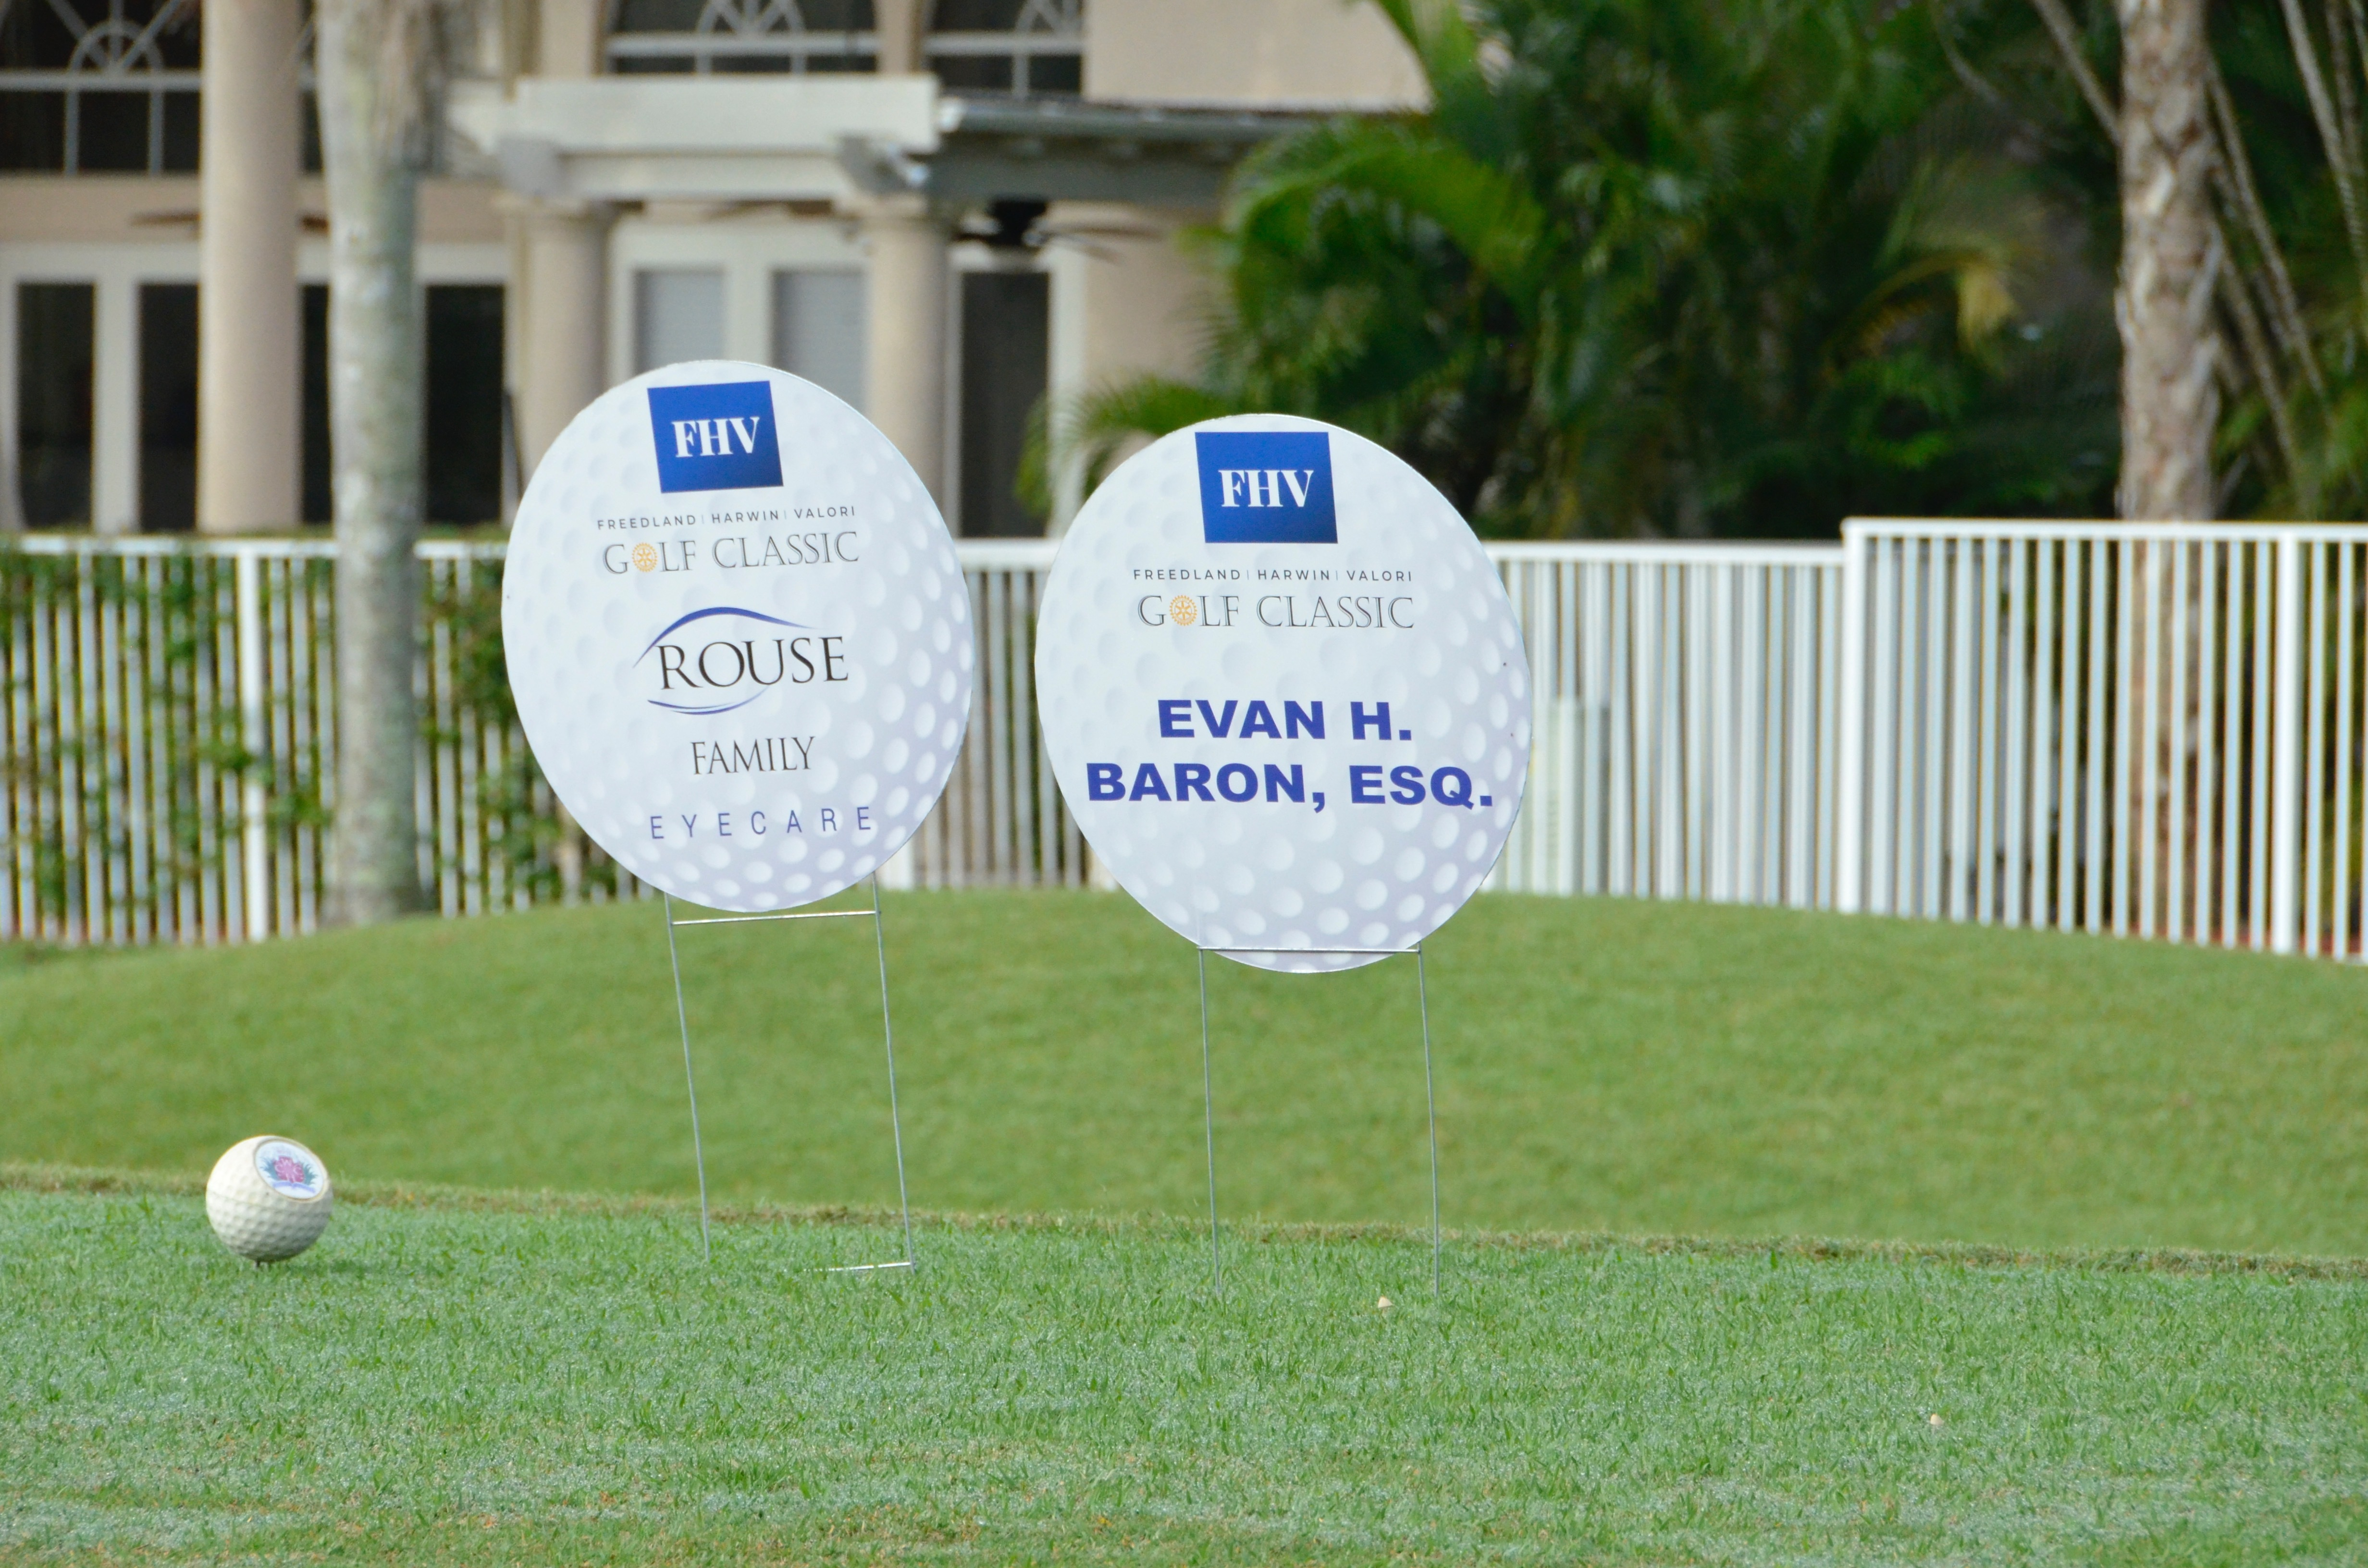 33rd Annual Rotary Golf Classic Sponsored by FHVLEGAL.COM gallery image #81